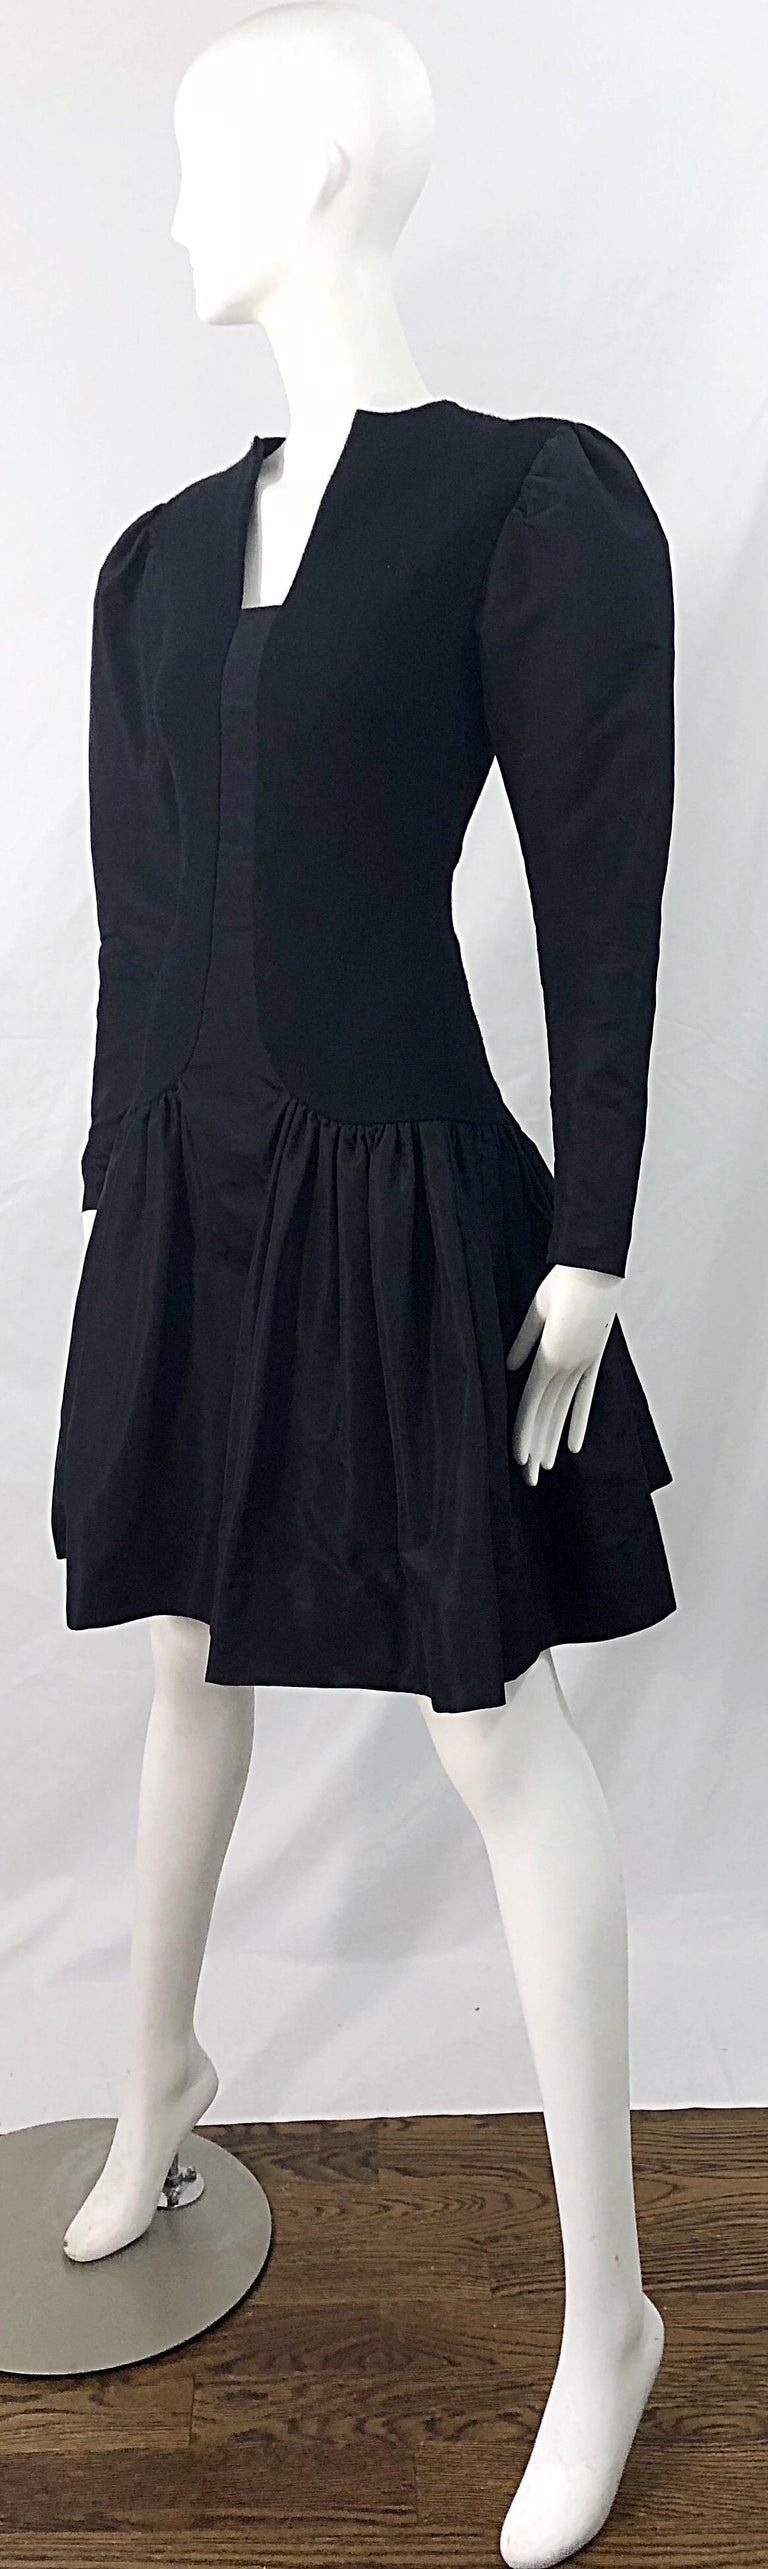 1980s Pauline Trigere Black Wool Silk Taffeta Avant Garde Vintage 80s Dress For Sale 1